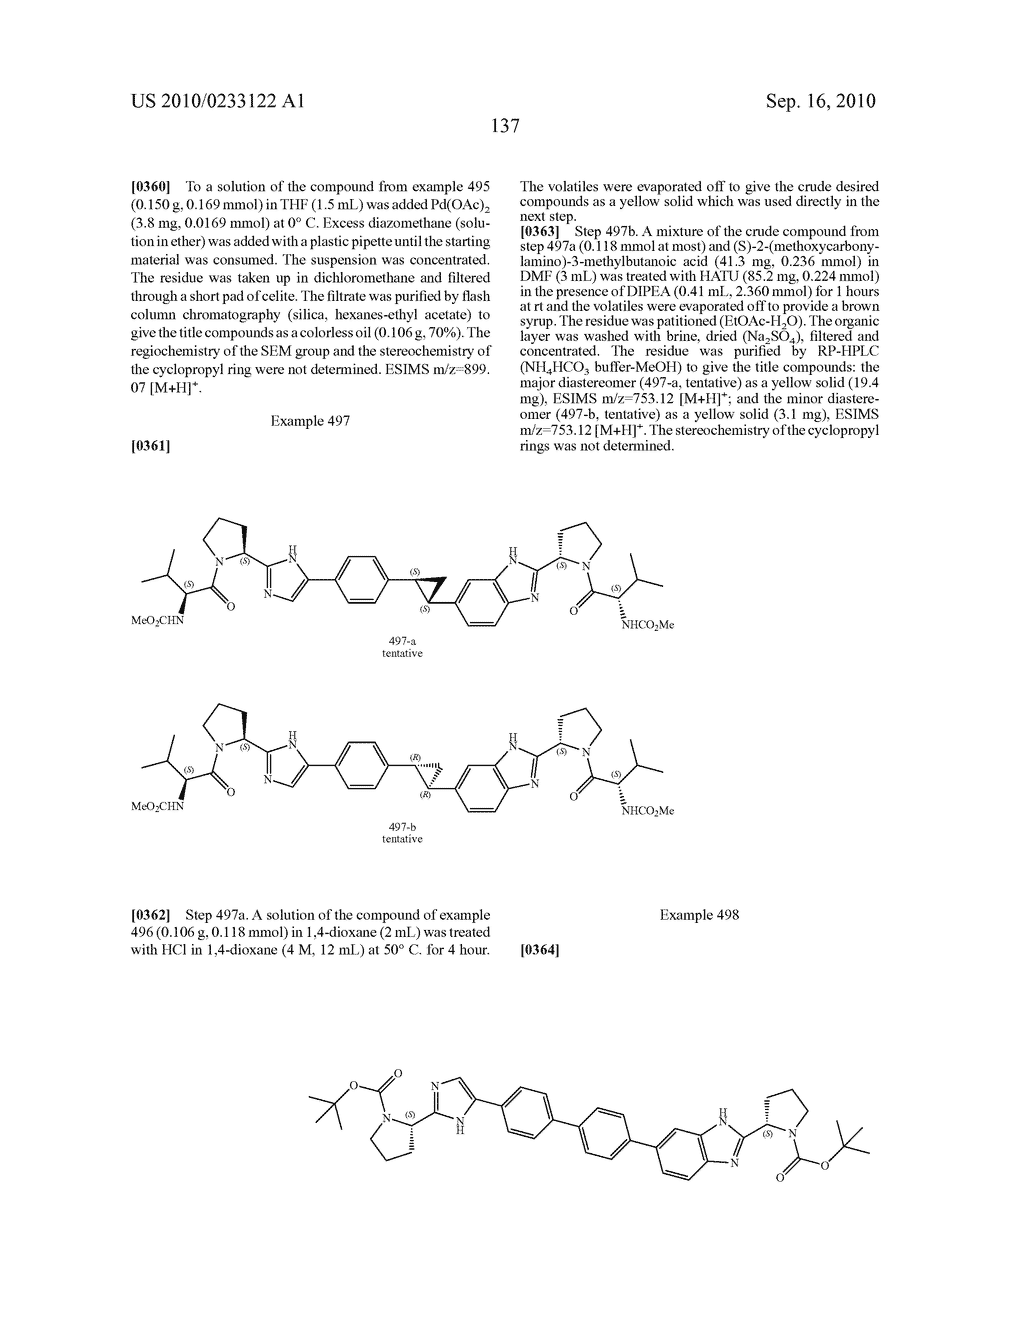 NOVEL BENZIMIDAZOLE DERIVATIVES - diagram, schematic, and image 138